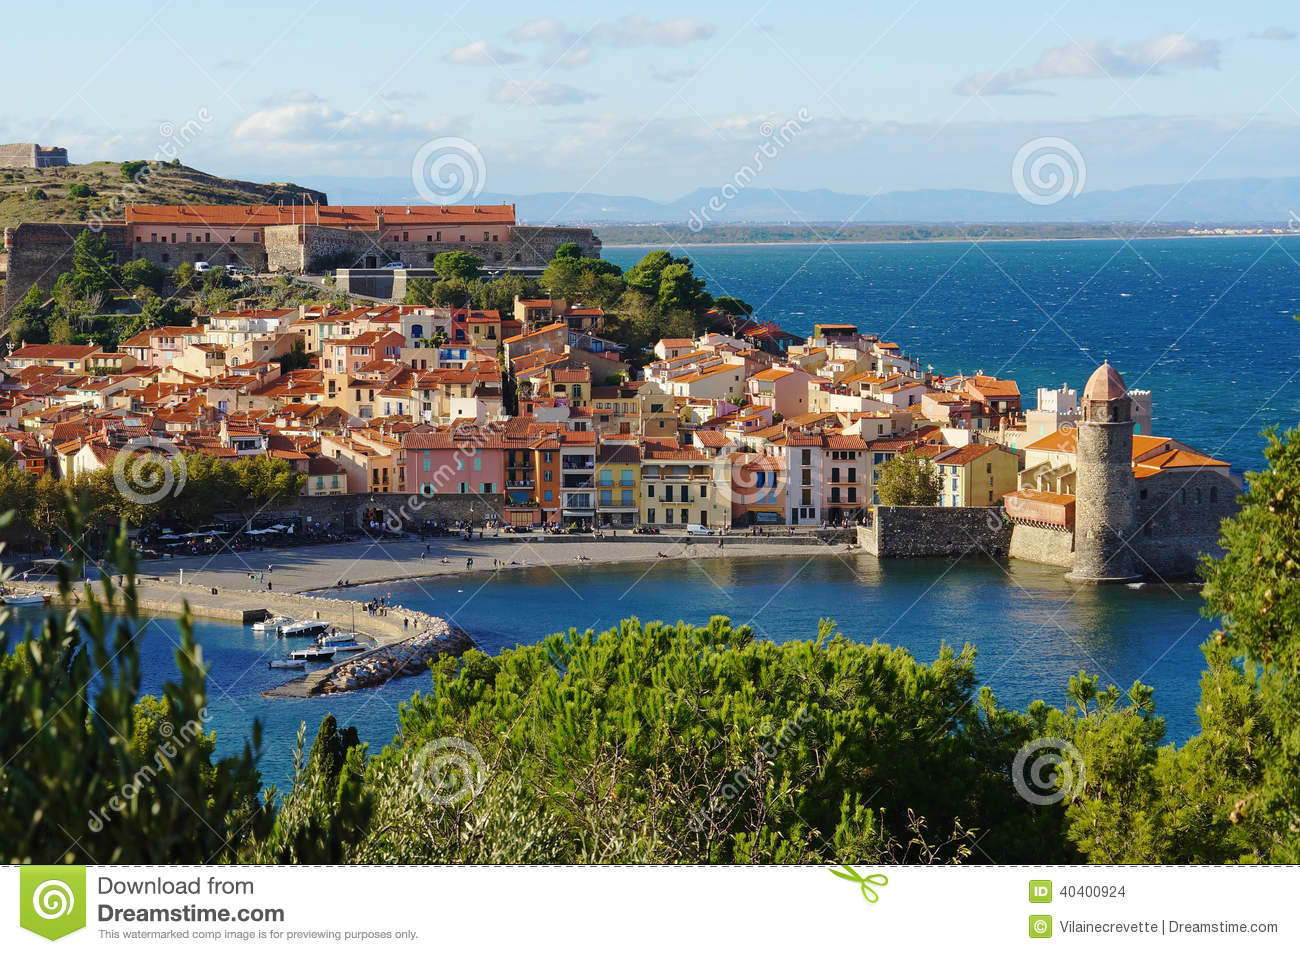 Village c tier de collioure dans les frances photo stock for Les jardins de collioure